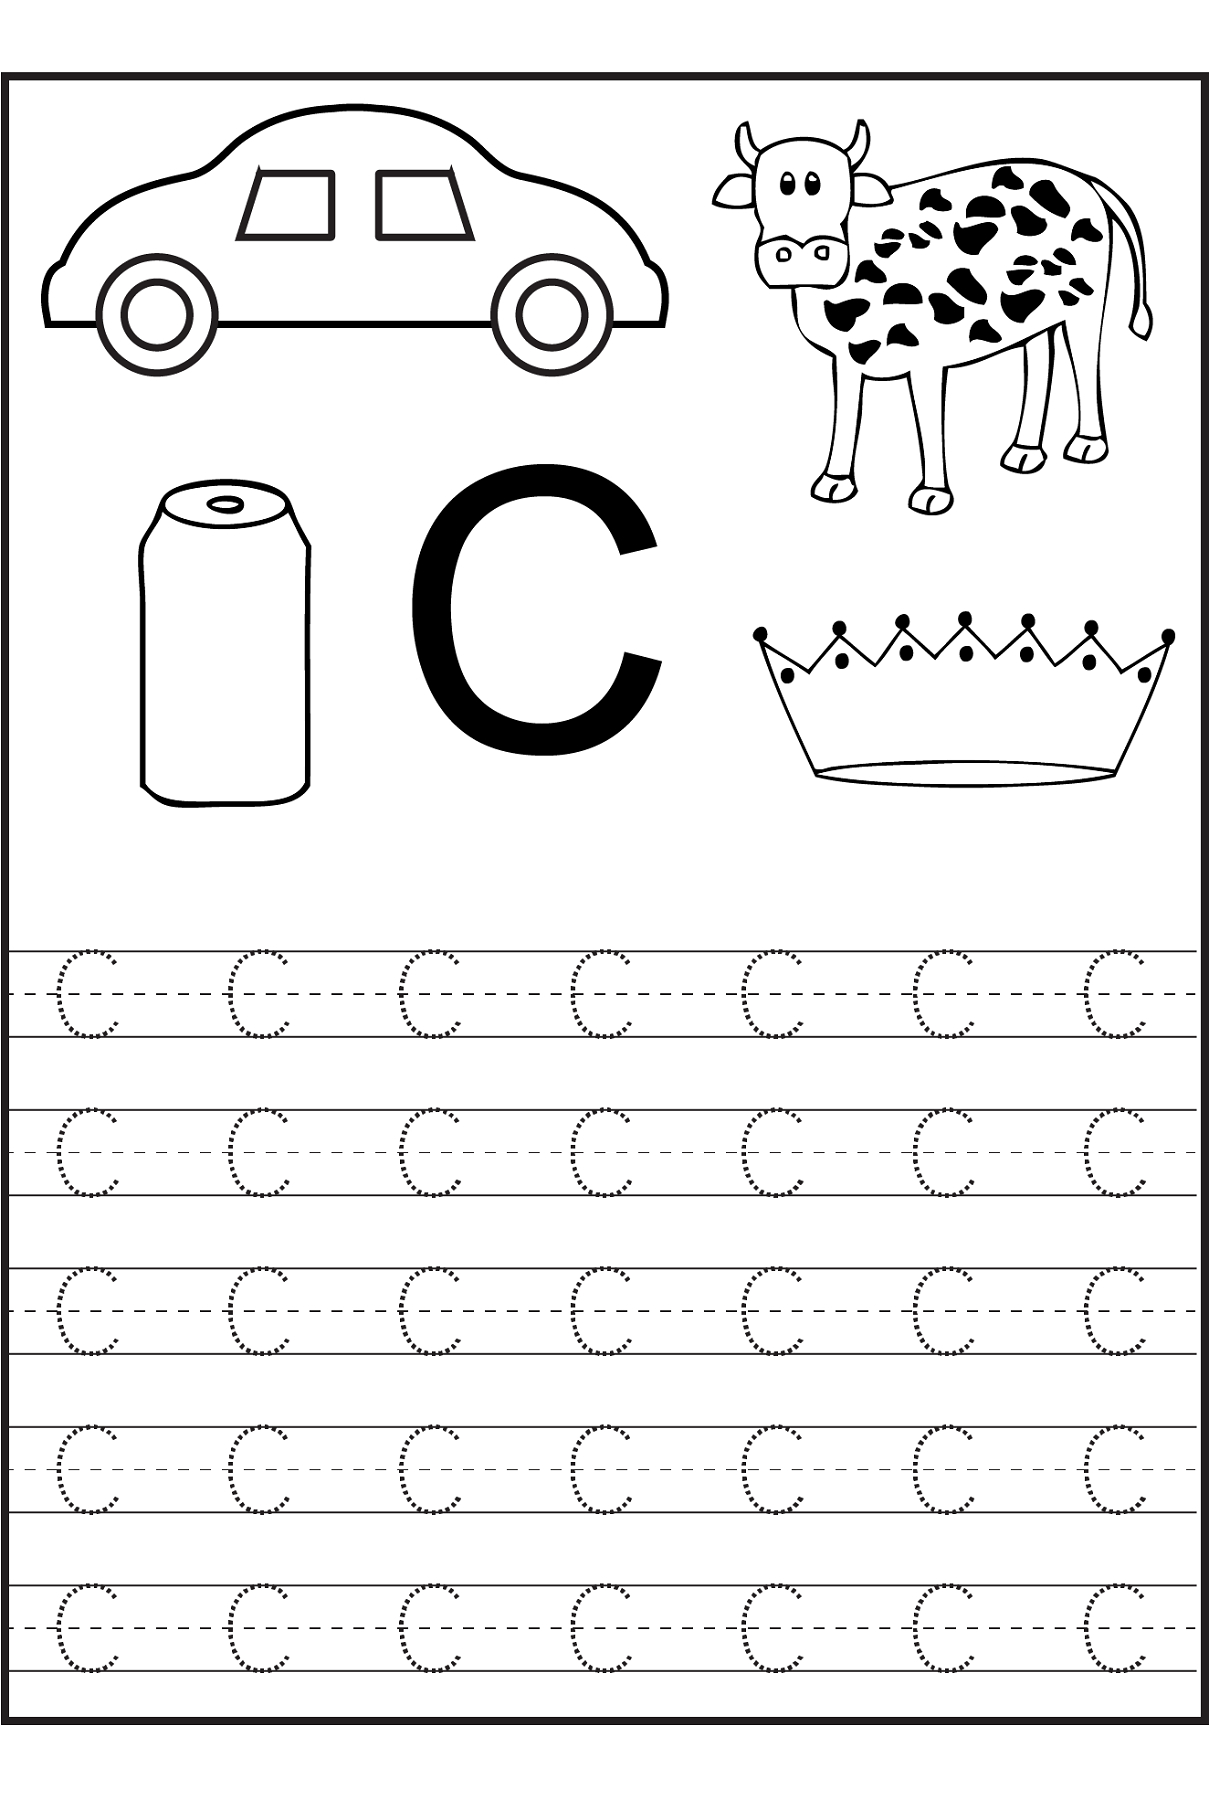 Trace The Letter C Worksheets   Alphabet And Numbers Learning - Free Printable Preschool Worksheets Letter C